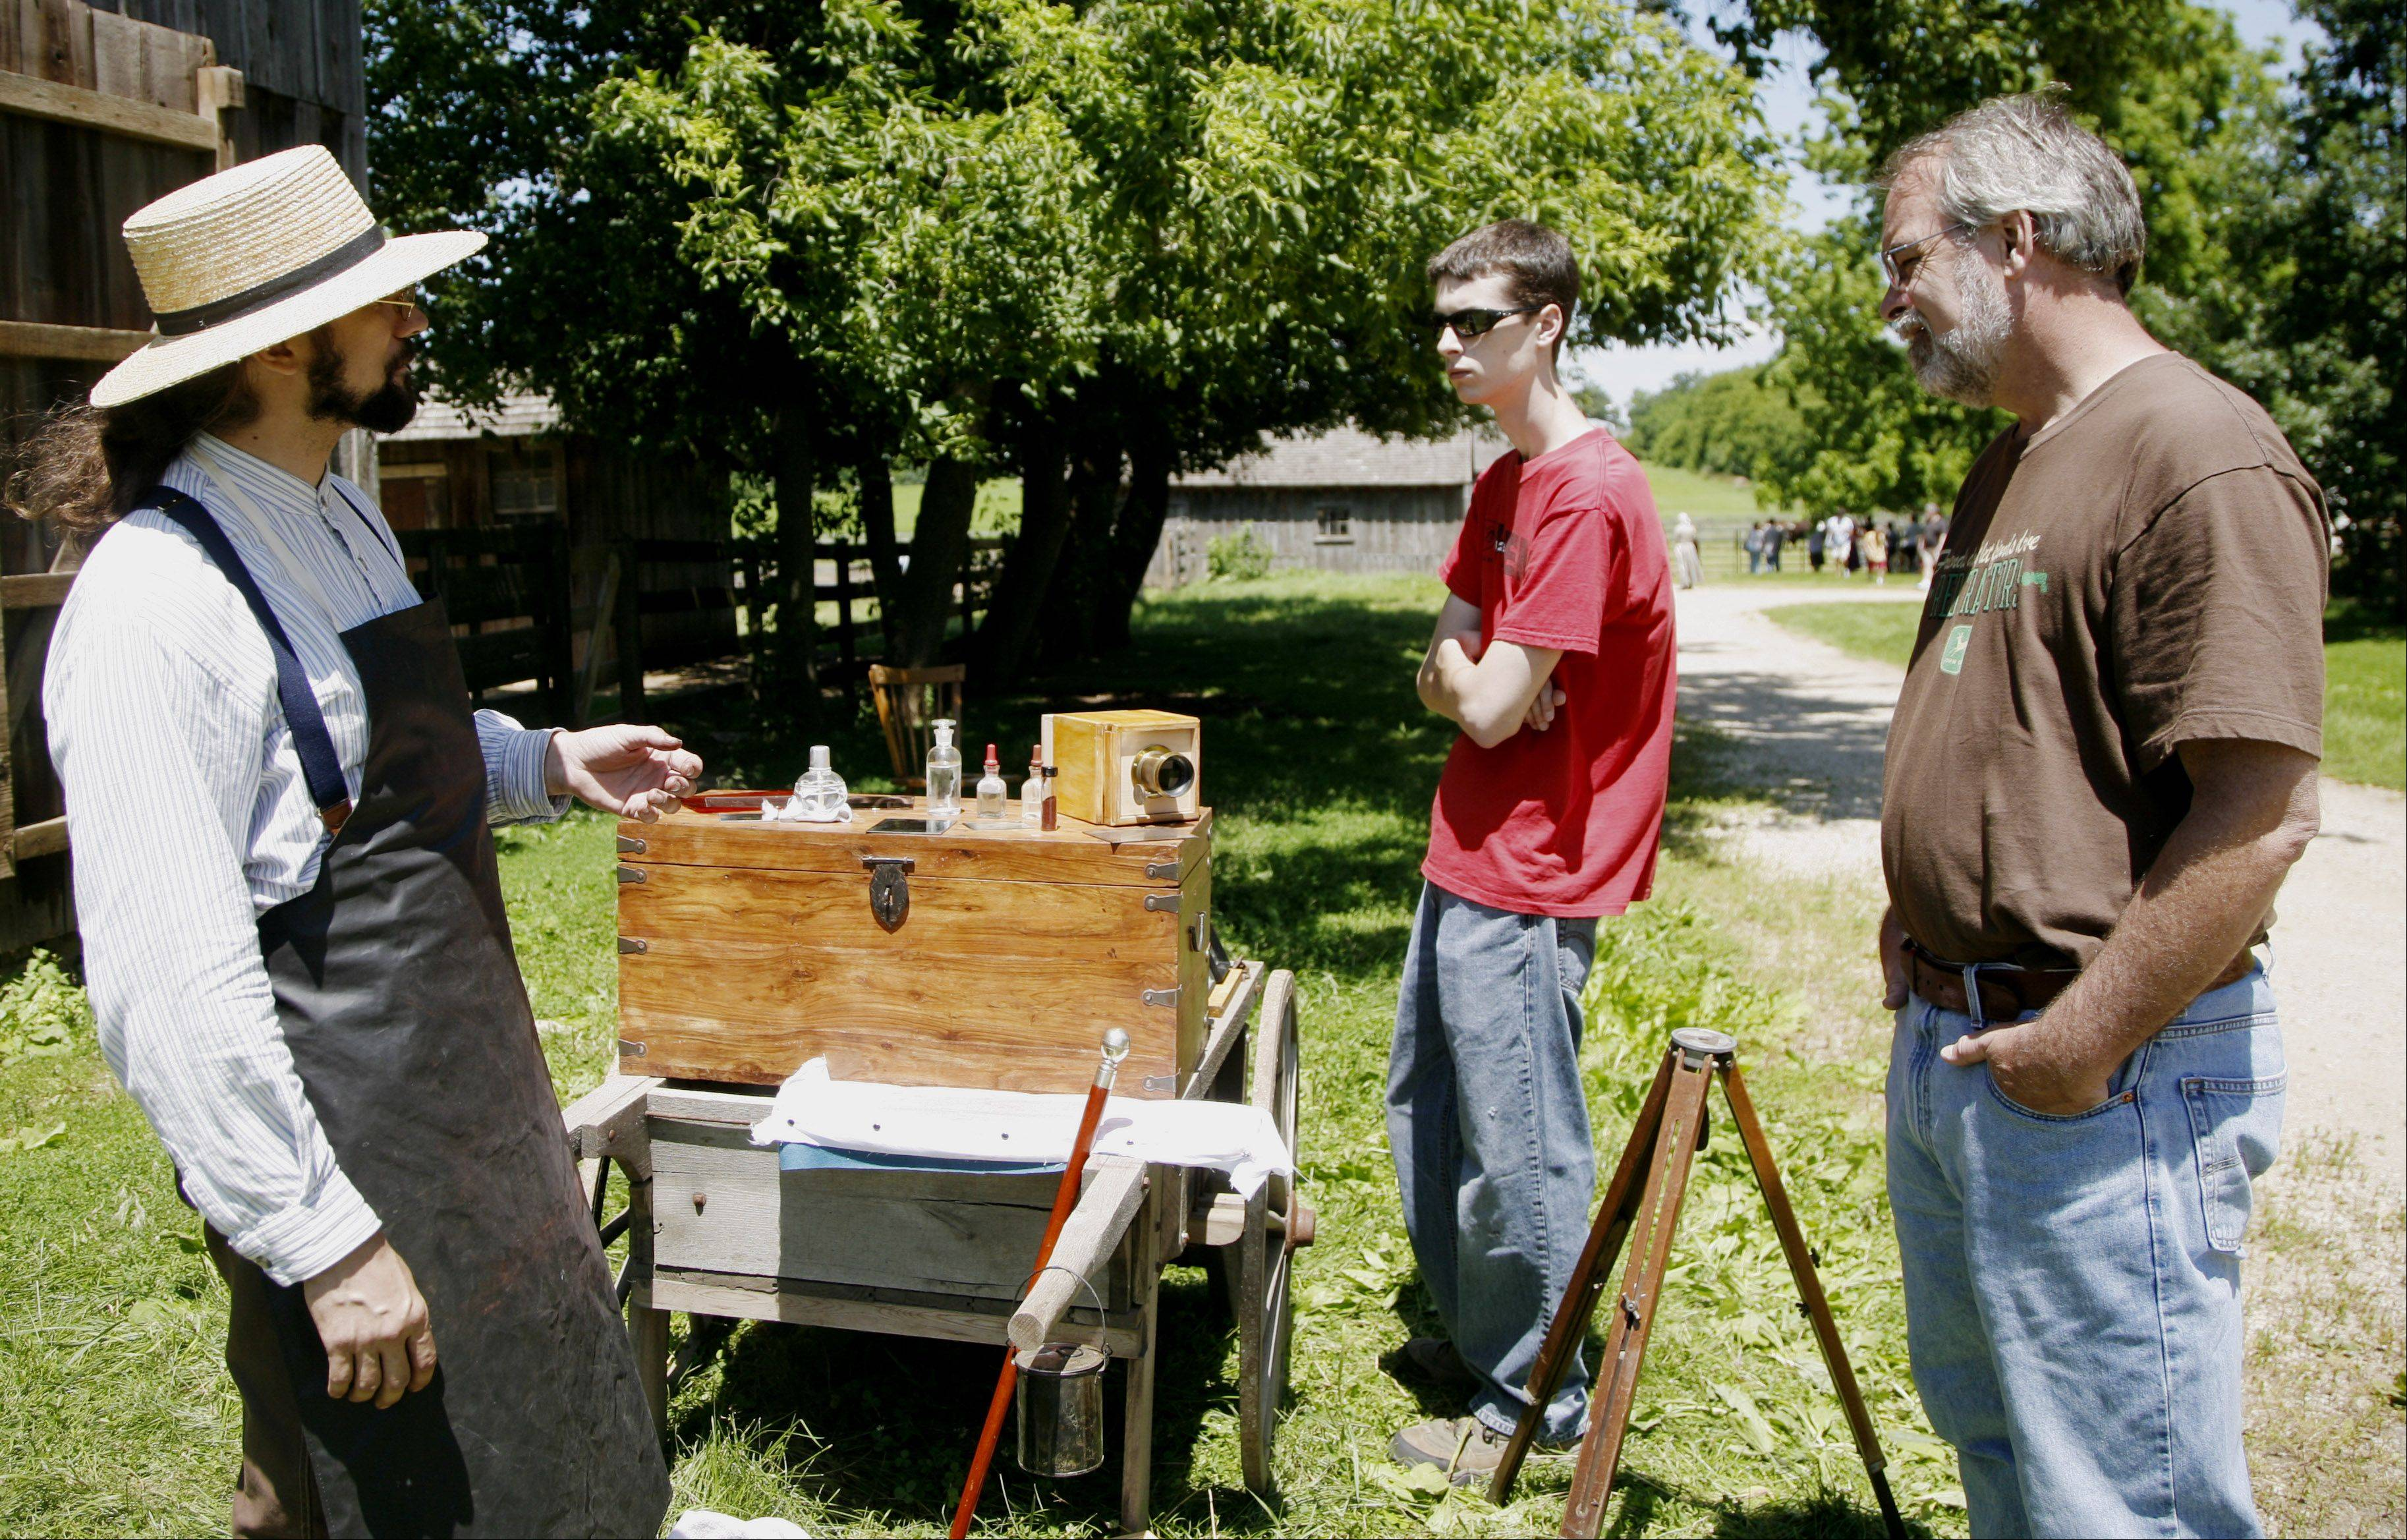 Chris Olsen of Campton Hills demonstrates a daguerreotype camera to Lisle residents Rick Fischer and his son Rick during a previous 1840s Days at Garfield Farm Museum.